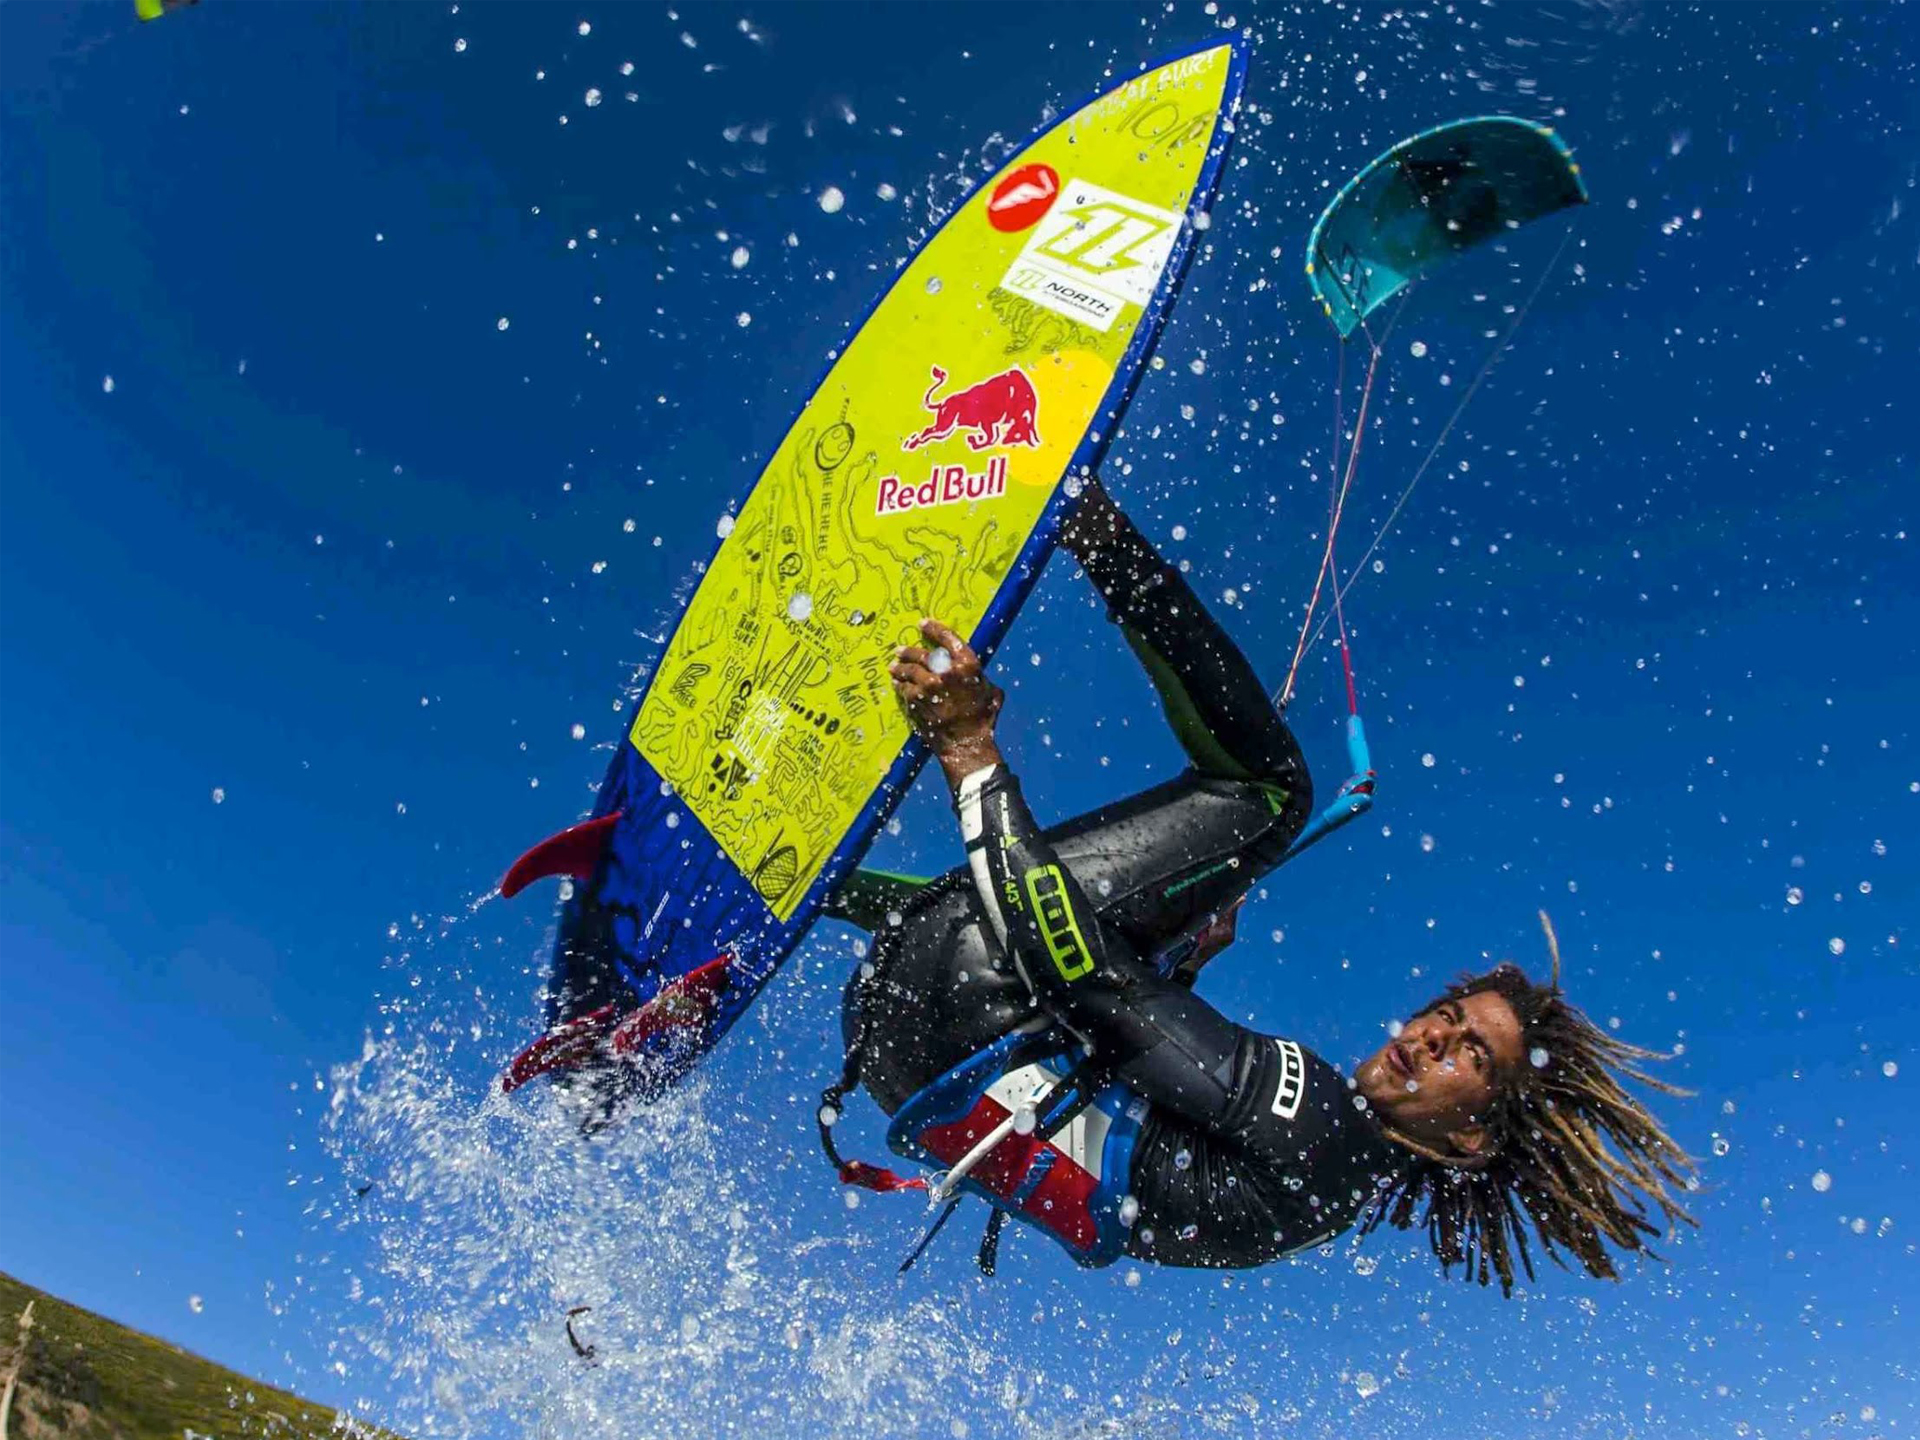 kitesurf wallpaper image - Airton Cozzolino with a strapless arial - North kiteboarding - in resolution: Standard 4:3 1920 X 1440